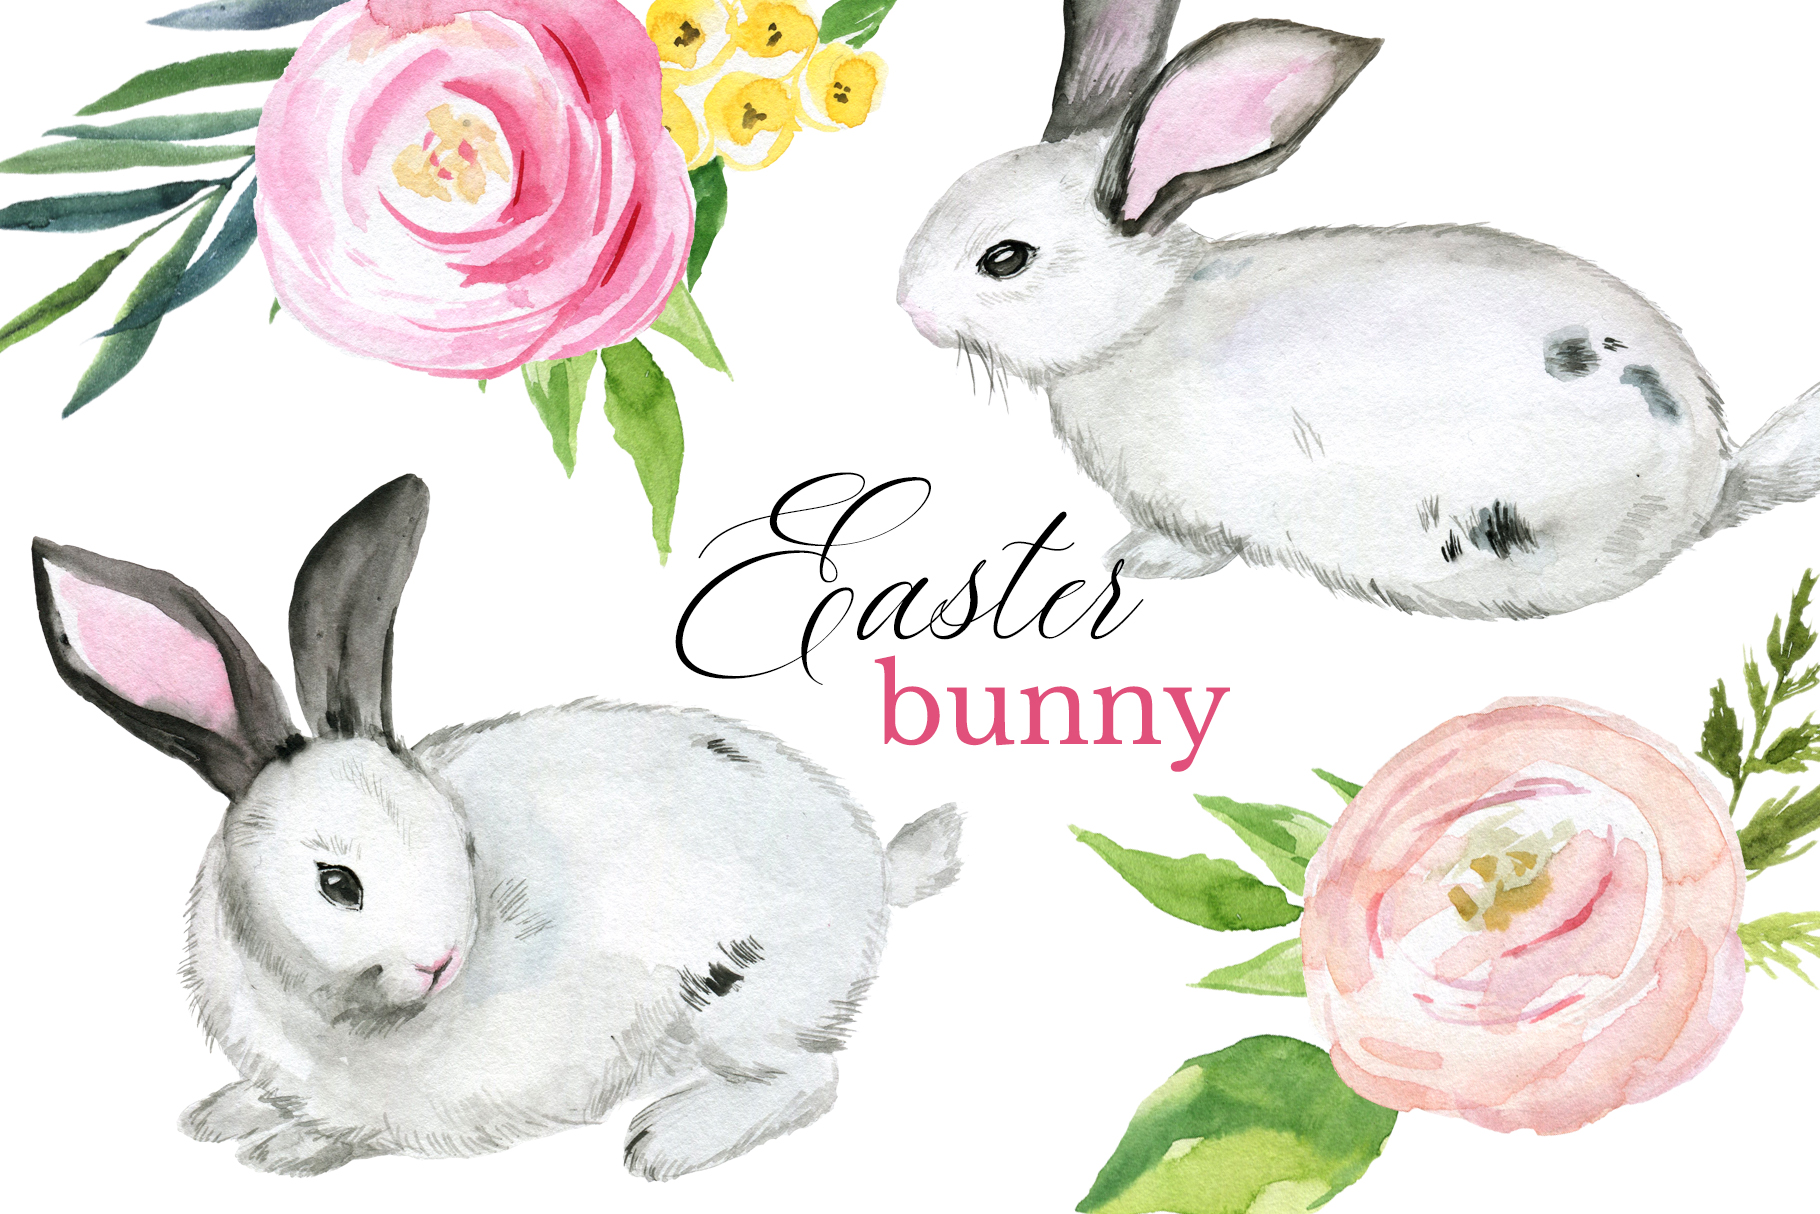 Download Free Bunny Easter Watercolor Clipart Set Graphic By Lena Dorosh for Cricut Explore, Silhouette and other cutting machines.